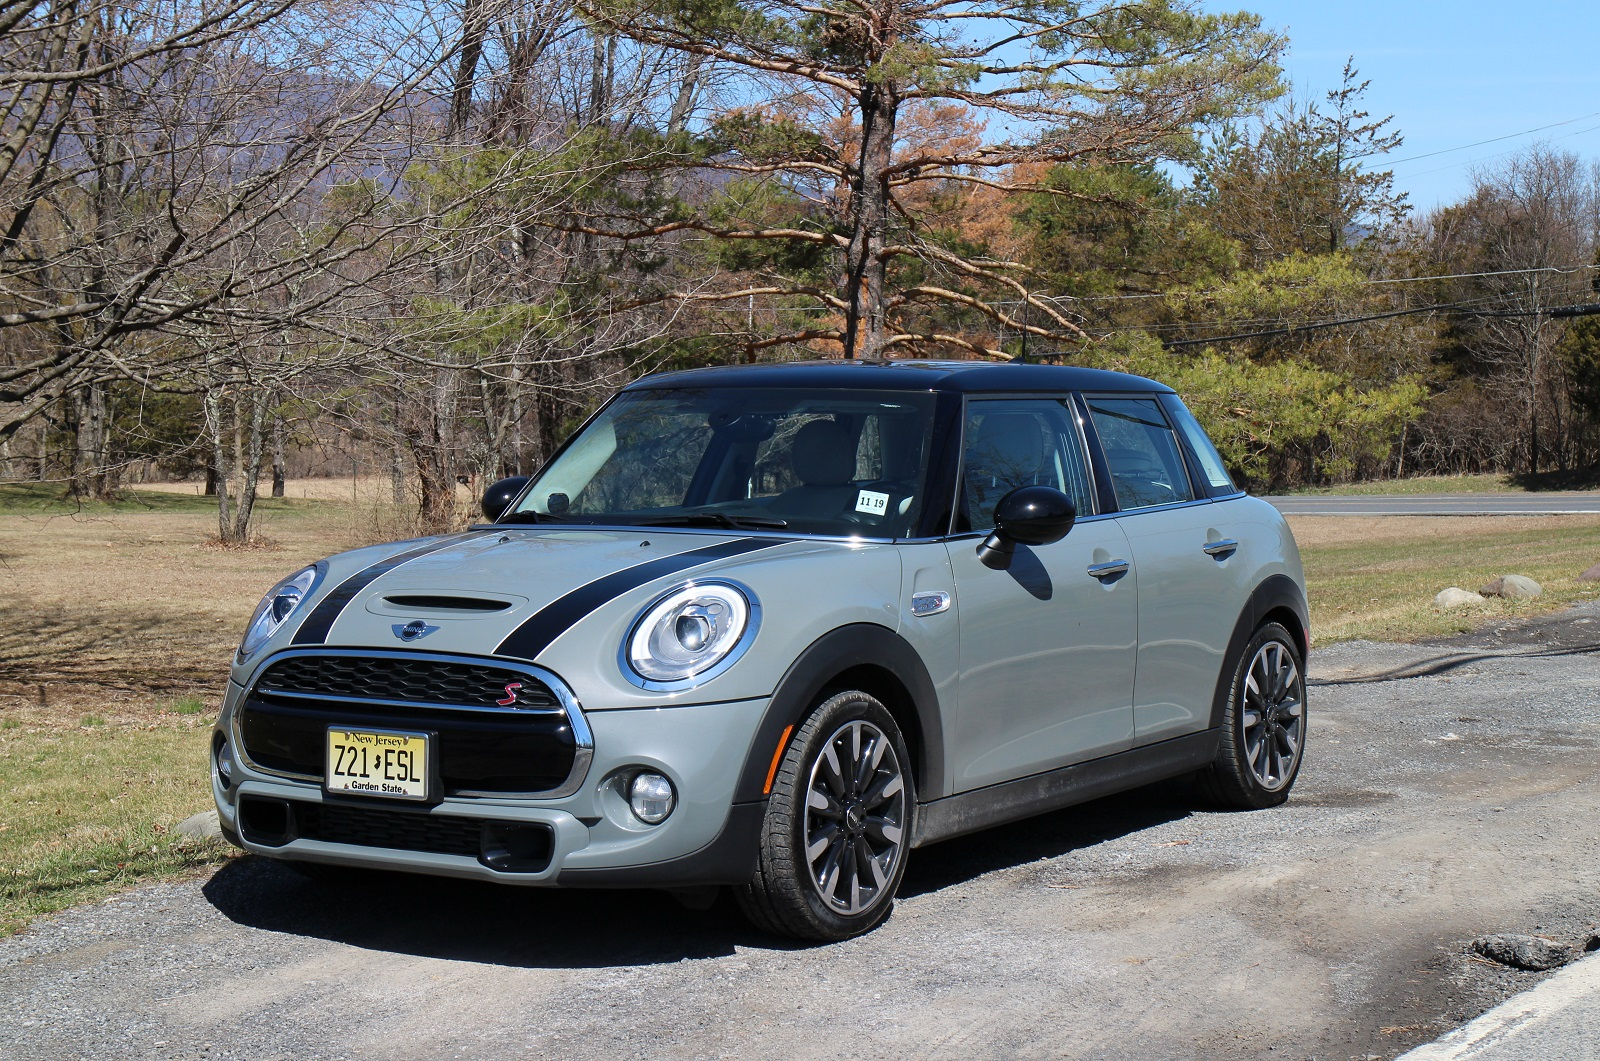 2015 mini cooper s hardtop 4 door gas mileage review. Black Bedroom Furniture Sets. Home Design Ideas